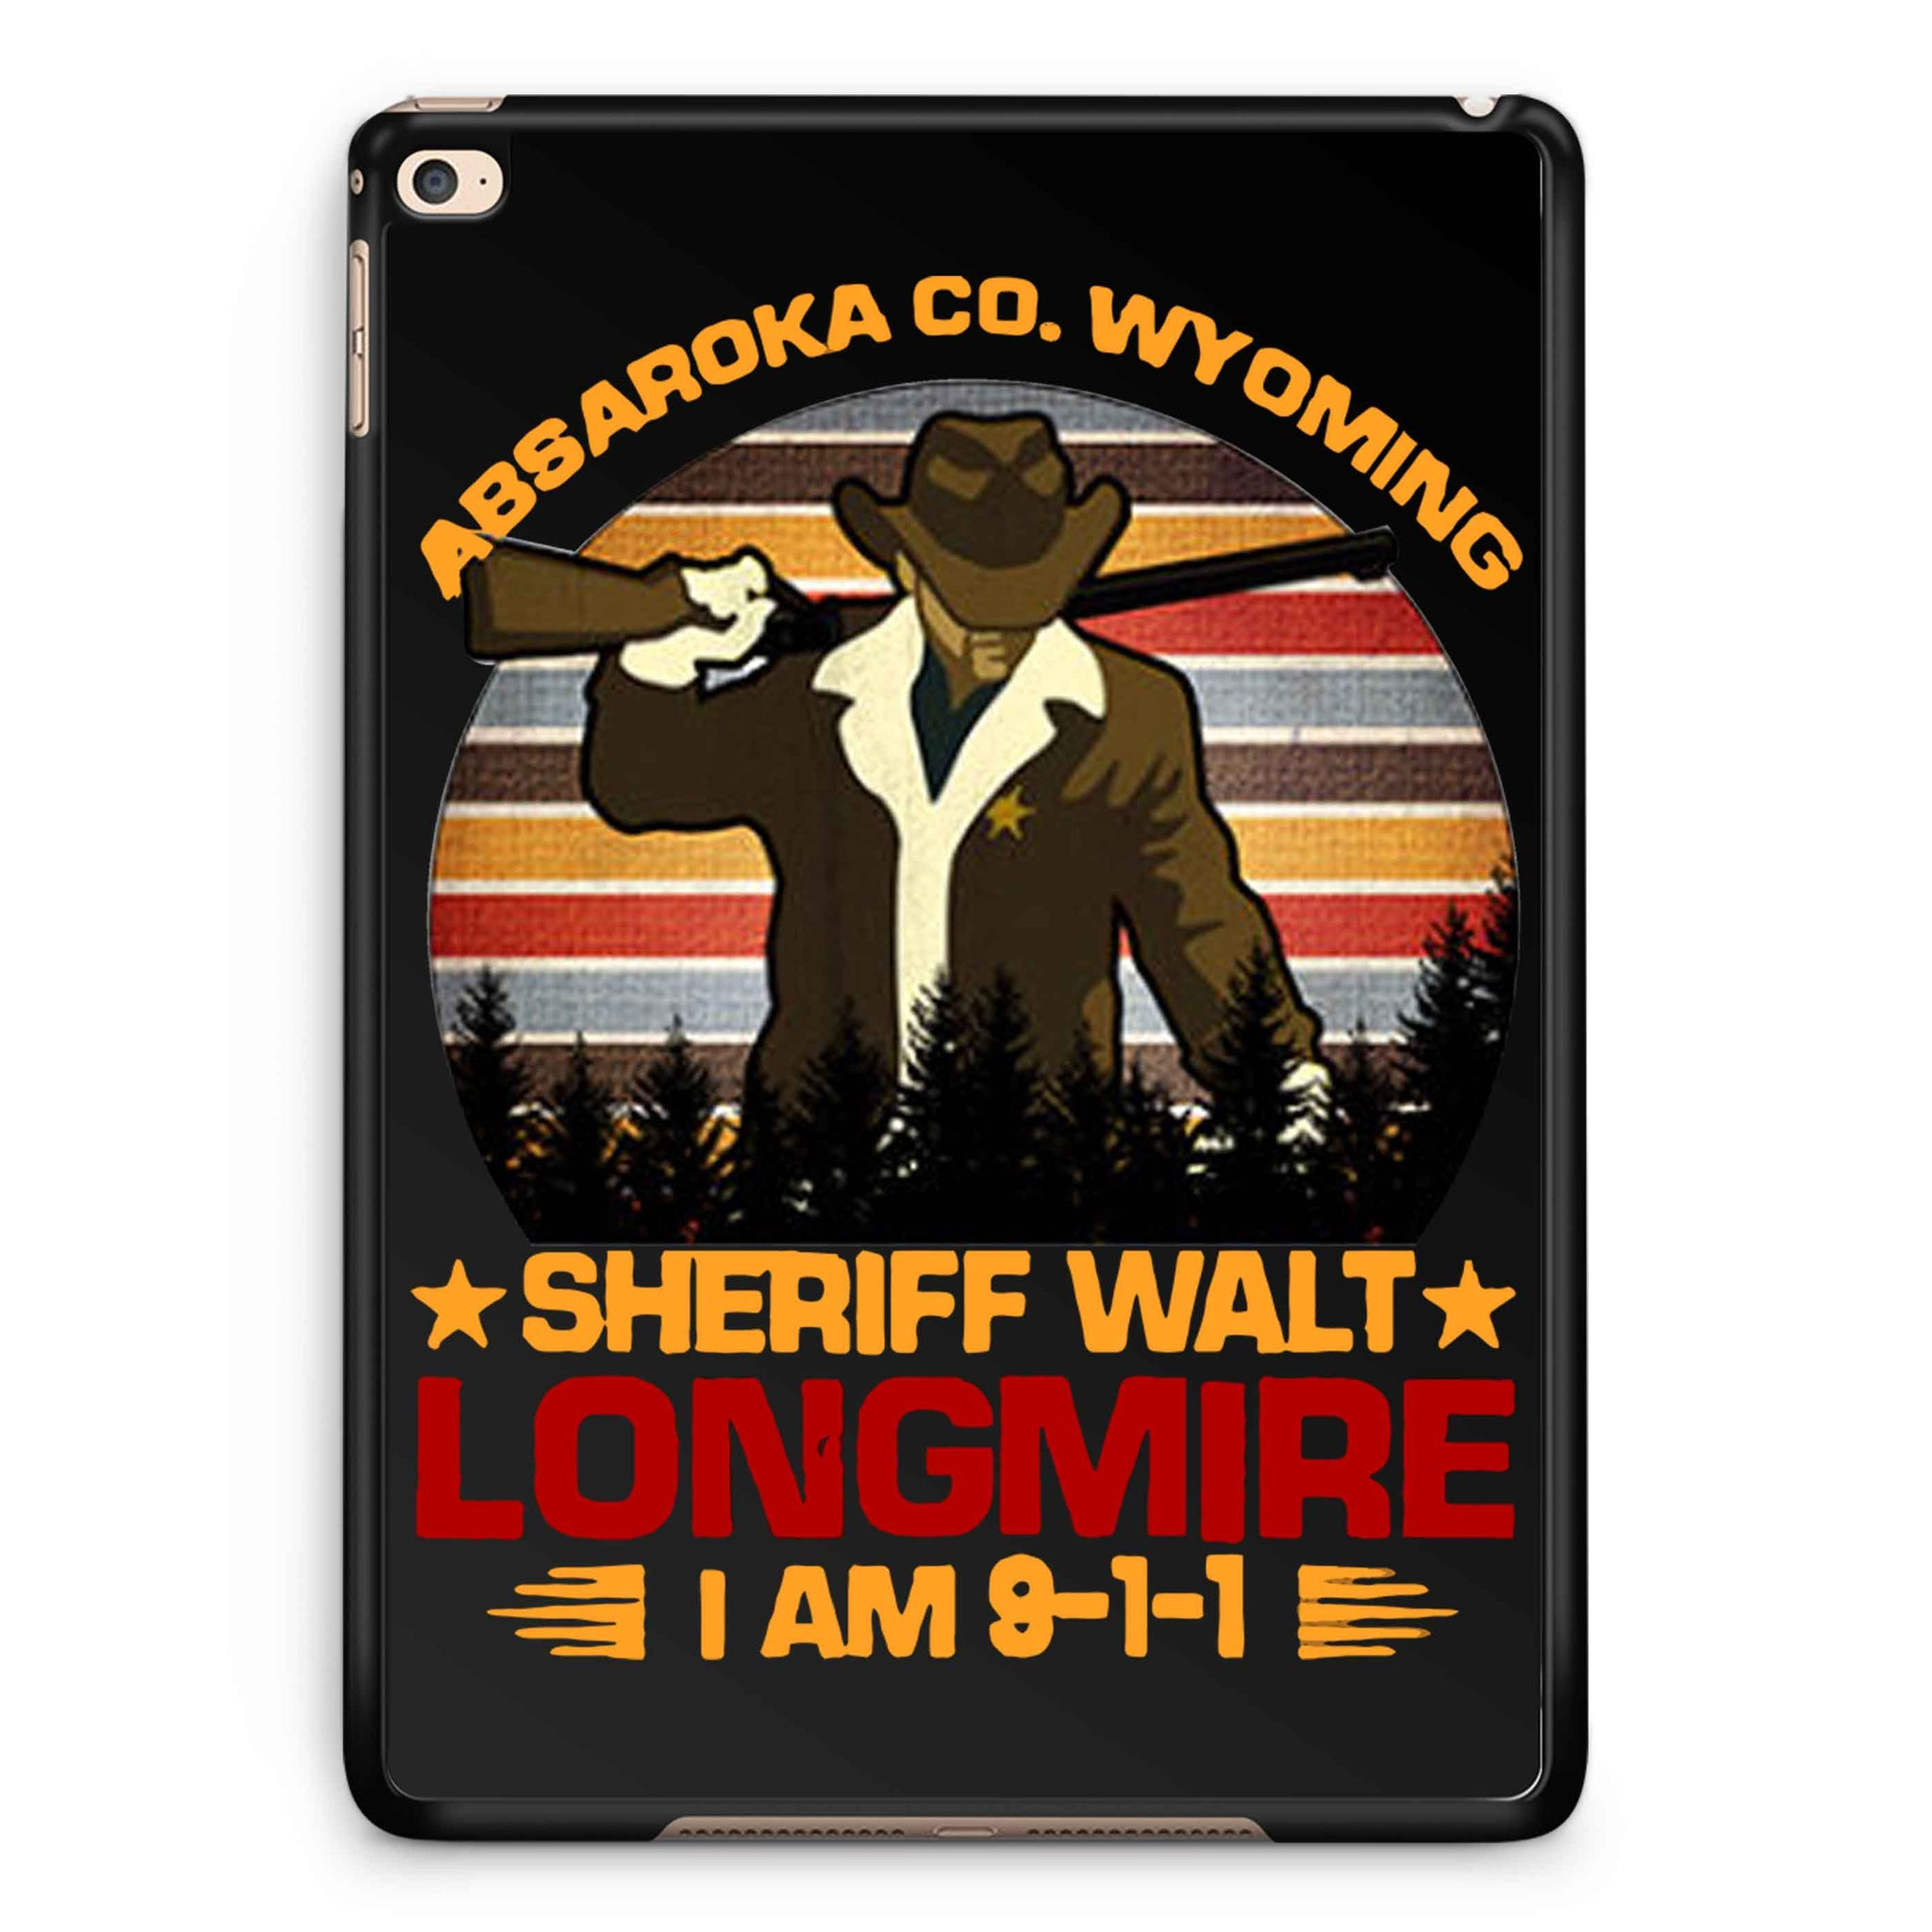 Absaroka Co Wyoming Sheriff Walt Longmire I Am 9-1-1 iPad 2 / 3 / 4 / 5 / 6| iPad Air / Air 2 | iPad Mini 1 / 2 / 3 / 4 | iPad Pro Case